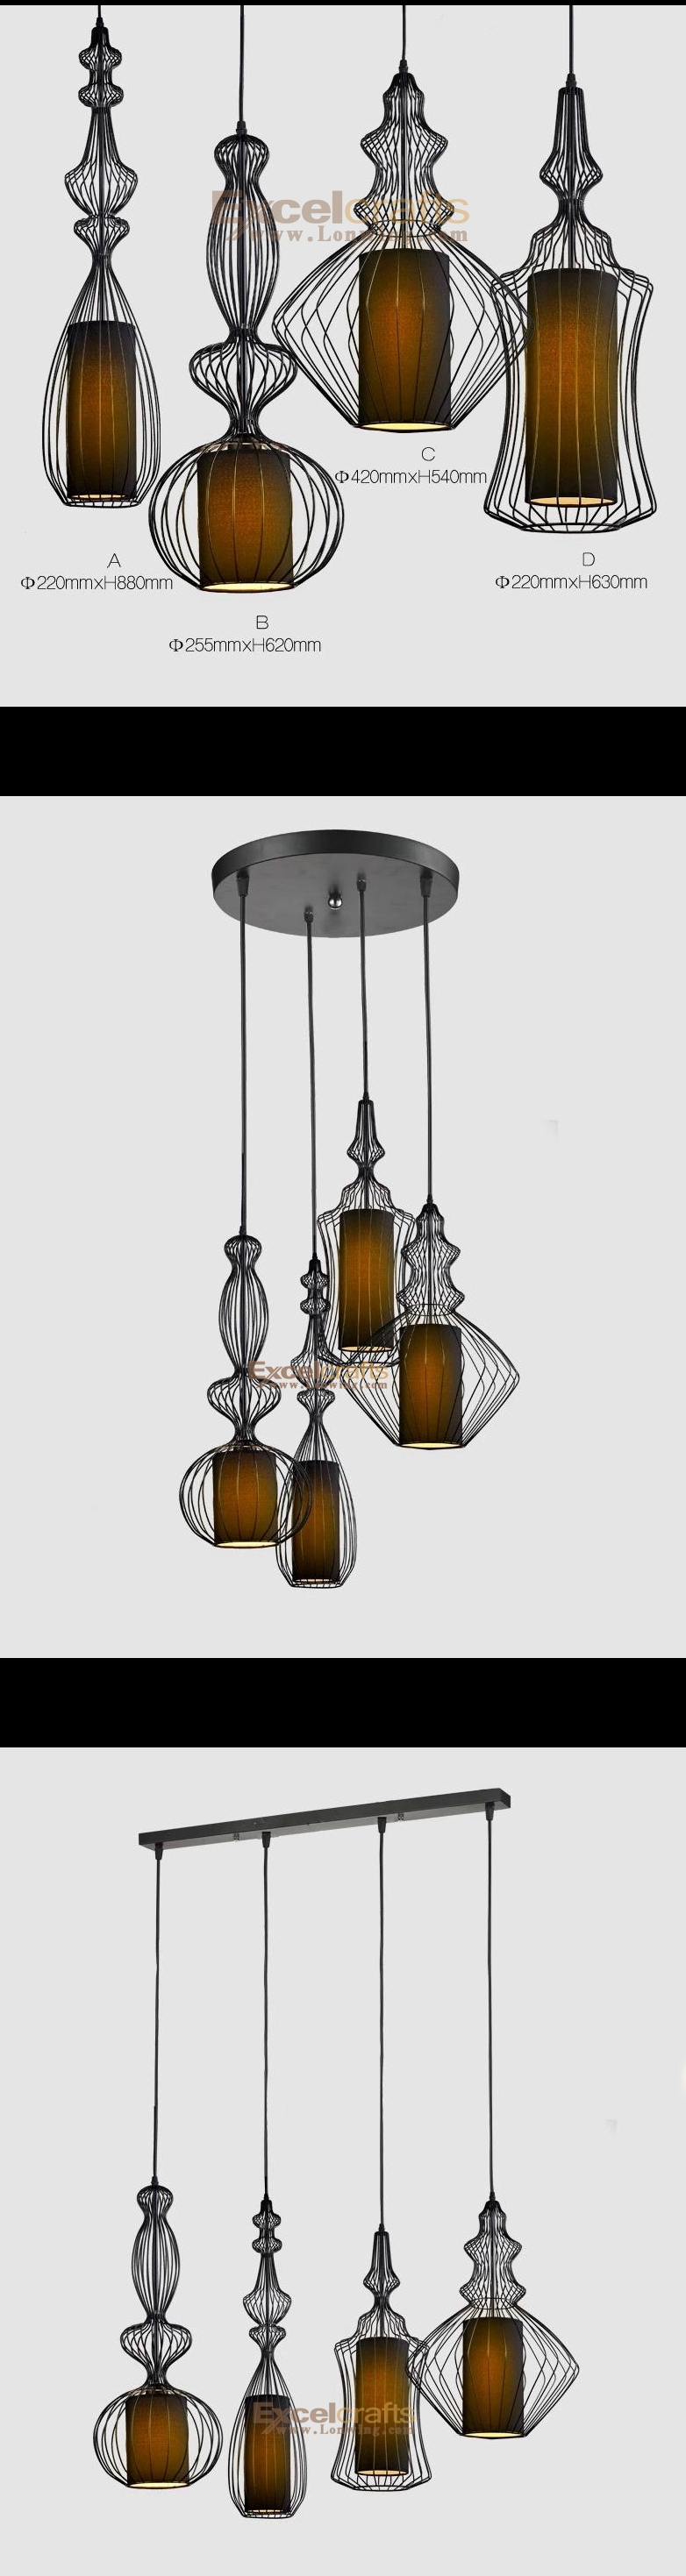 Vintage Nobleman ABCD Chandeliers Bird Cage Iron Lamps for Home Lightings